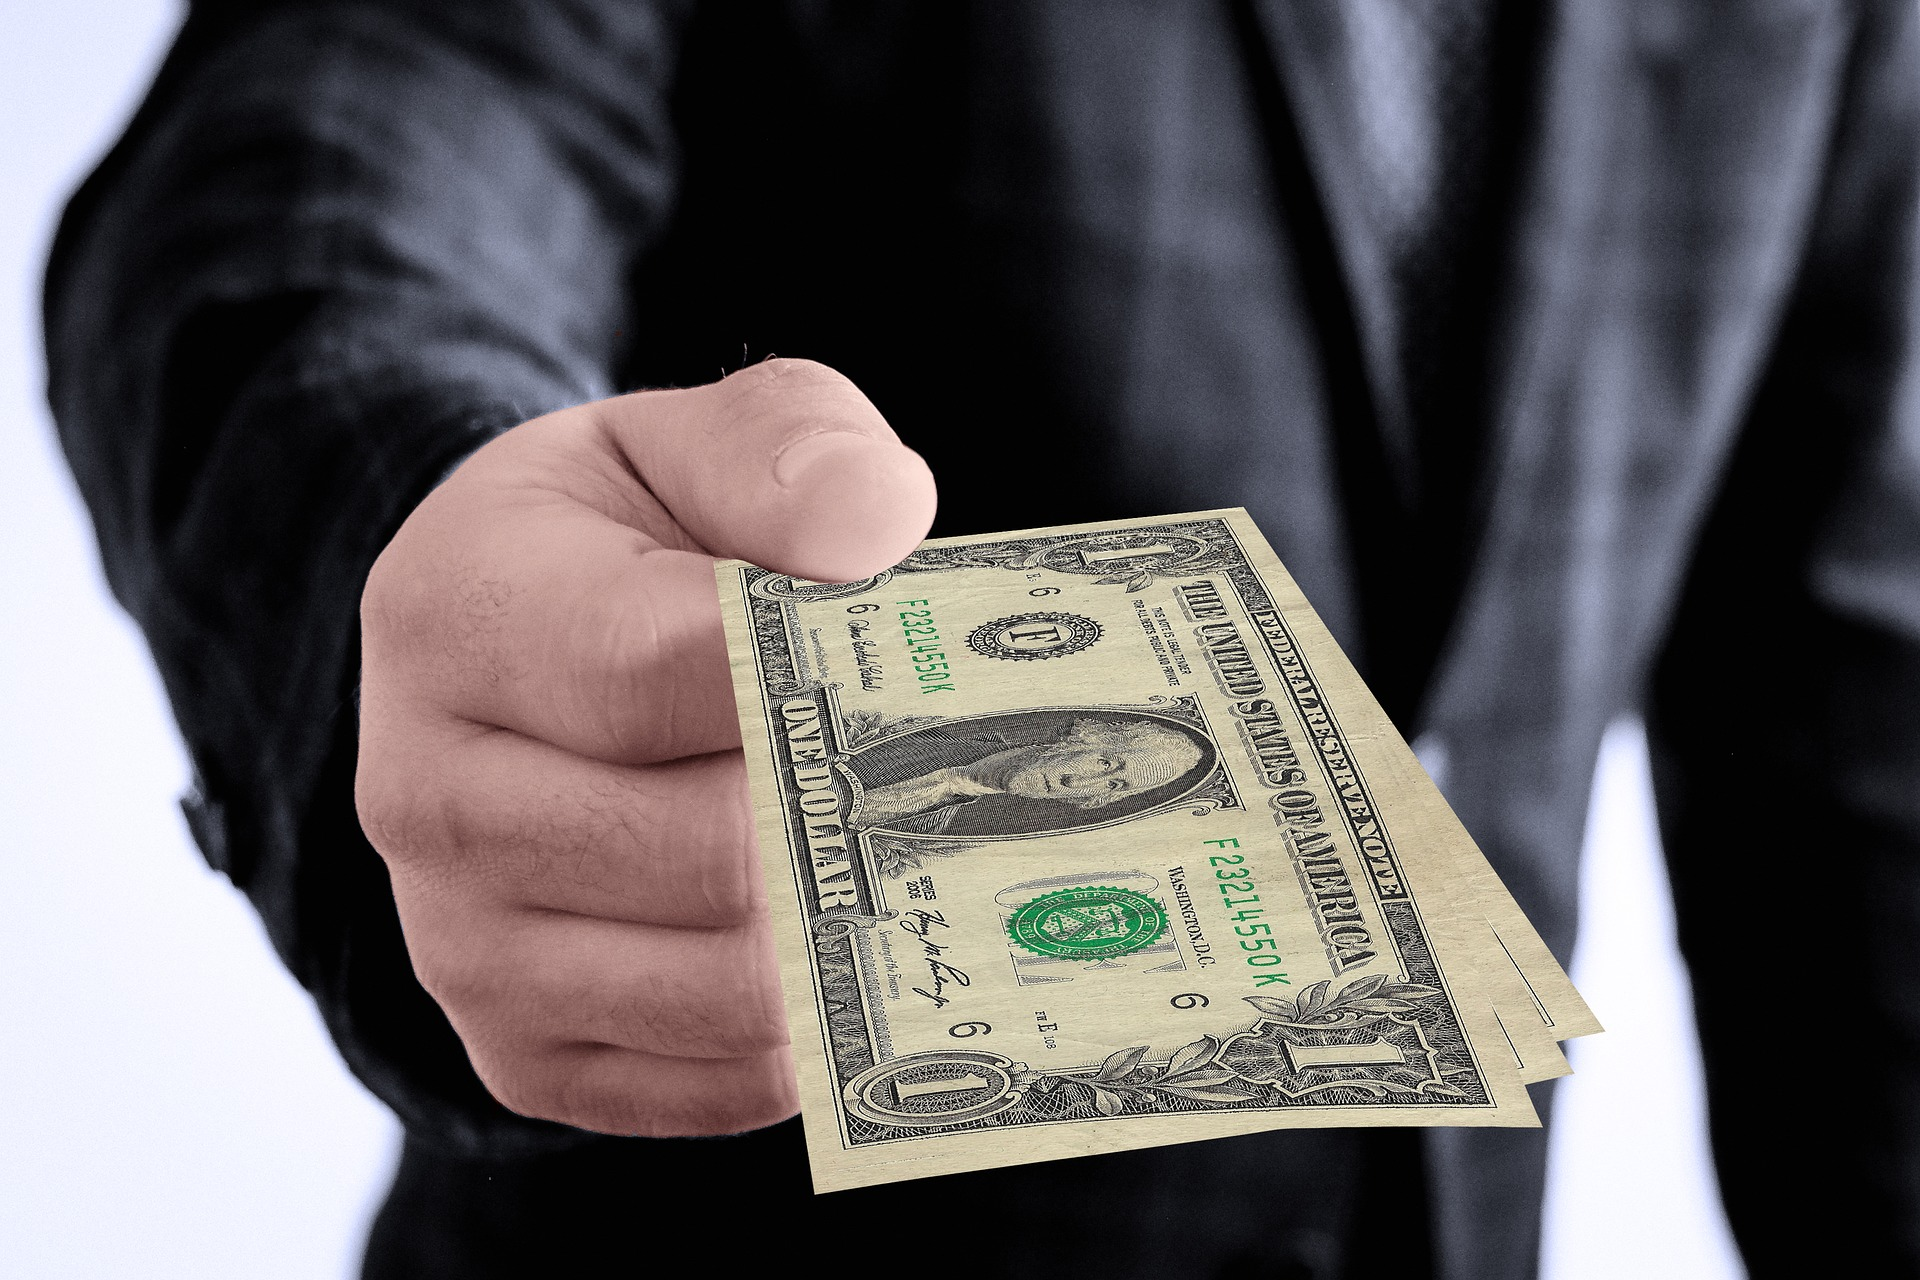 Do Employers Have the Right to Hold Your Paycheck?